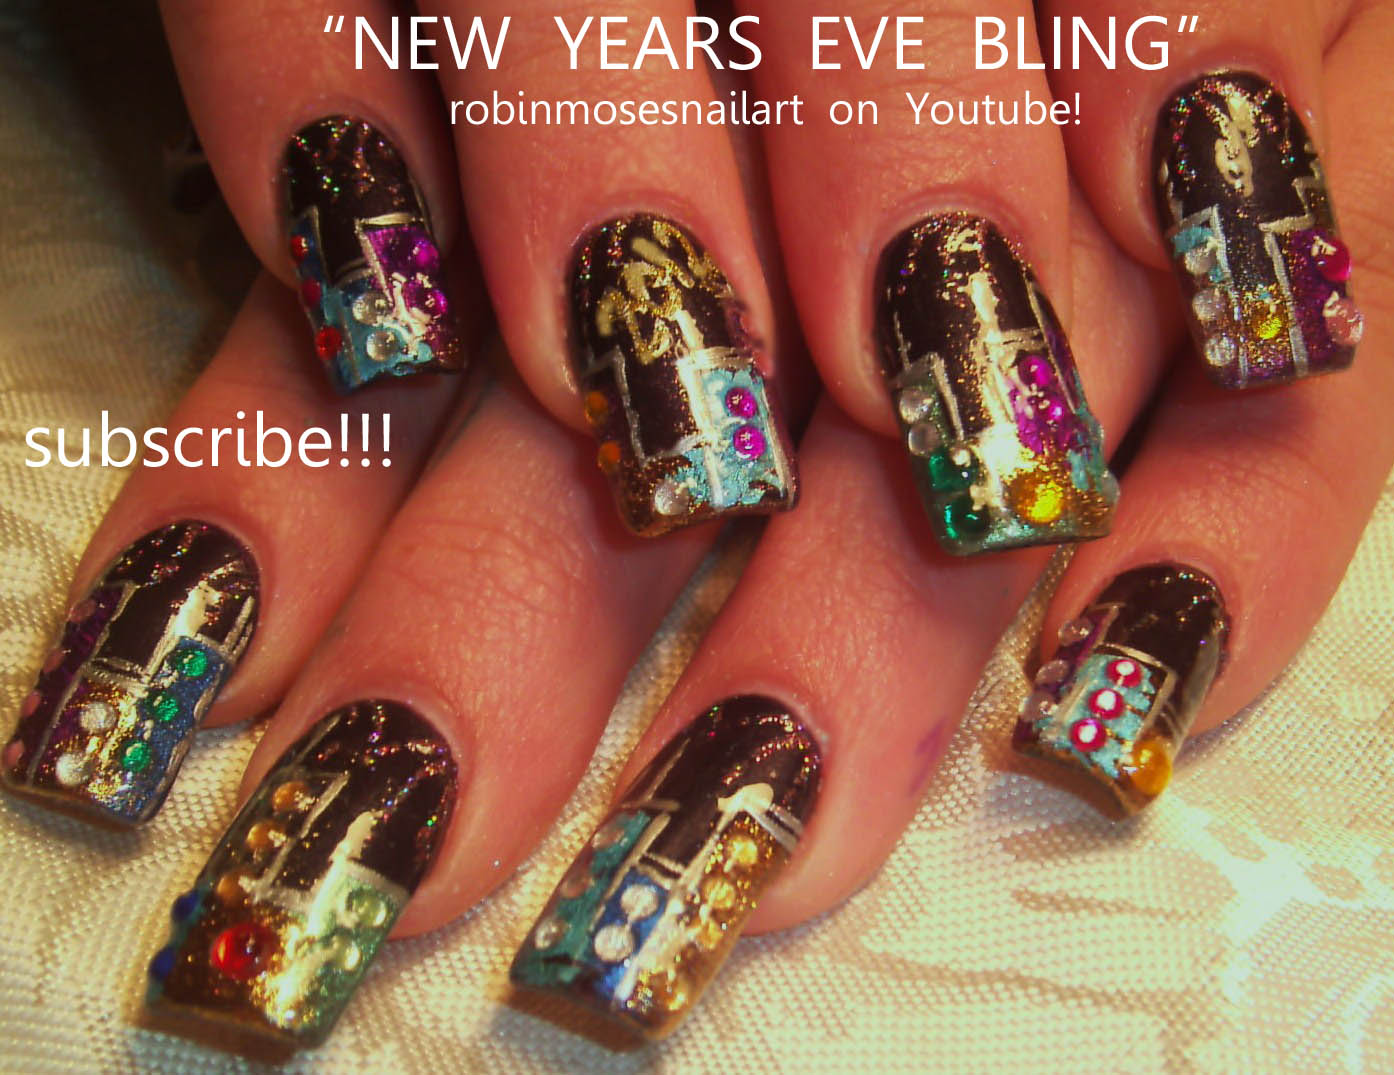 Robin moses nail art new york nails new year 2012 new year new york nails new year 2012 new year nails easy new year nails fashion trends 2012 essie dive bar polish nyc chinatown nyc new years nails prinsesfo Images